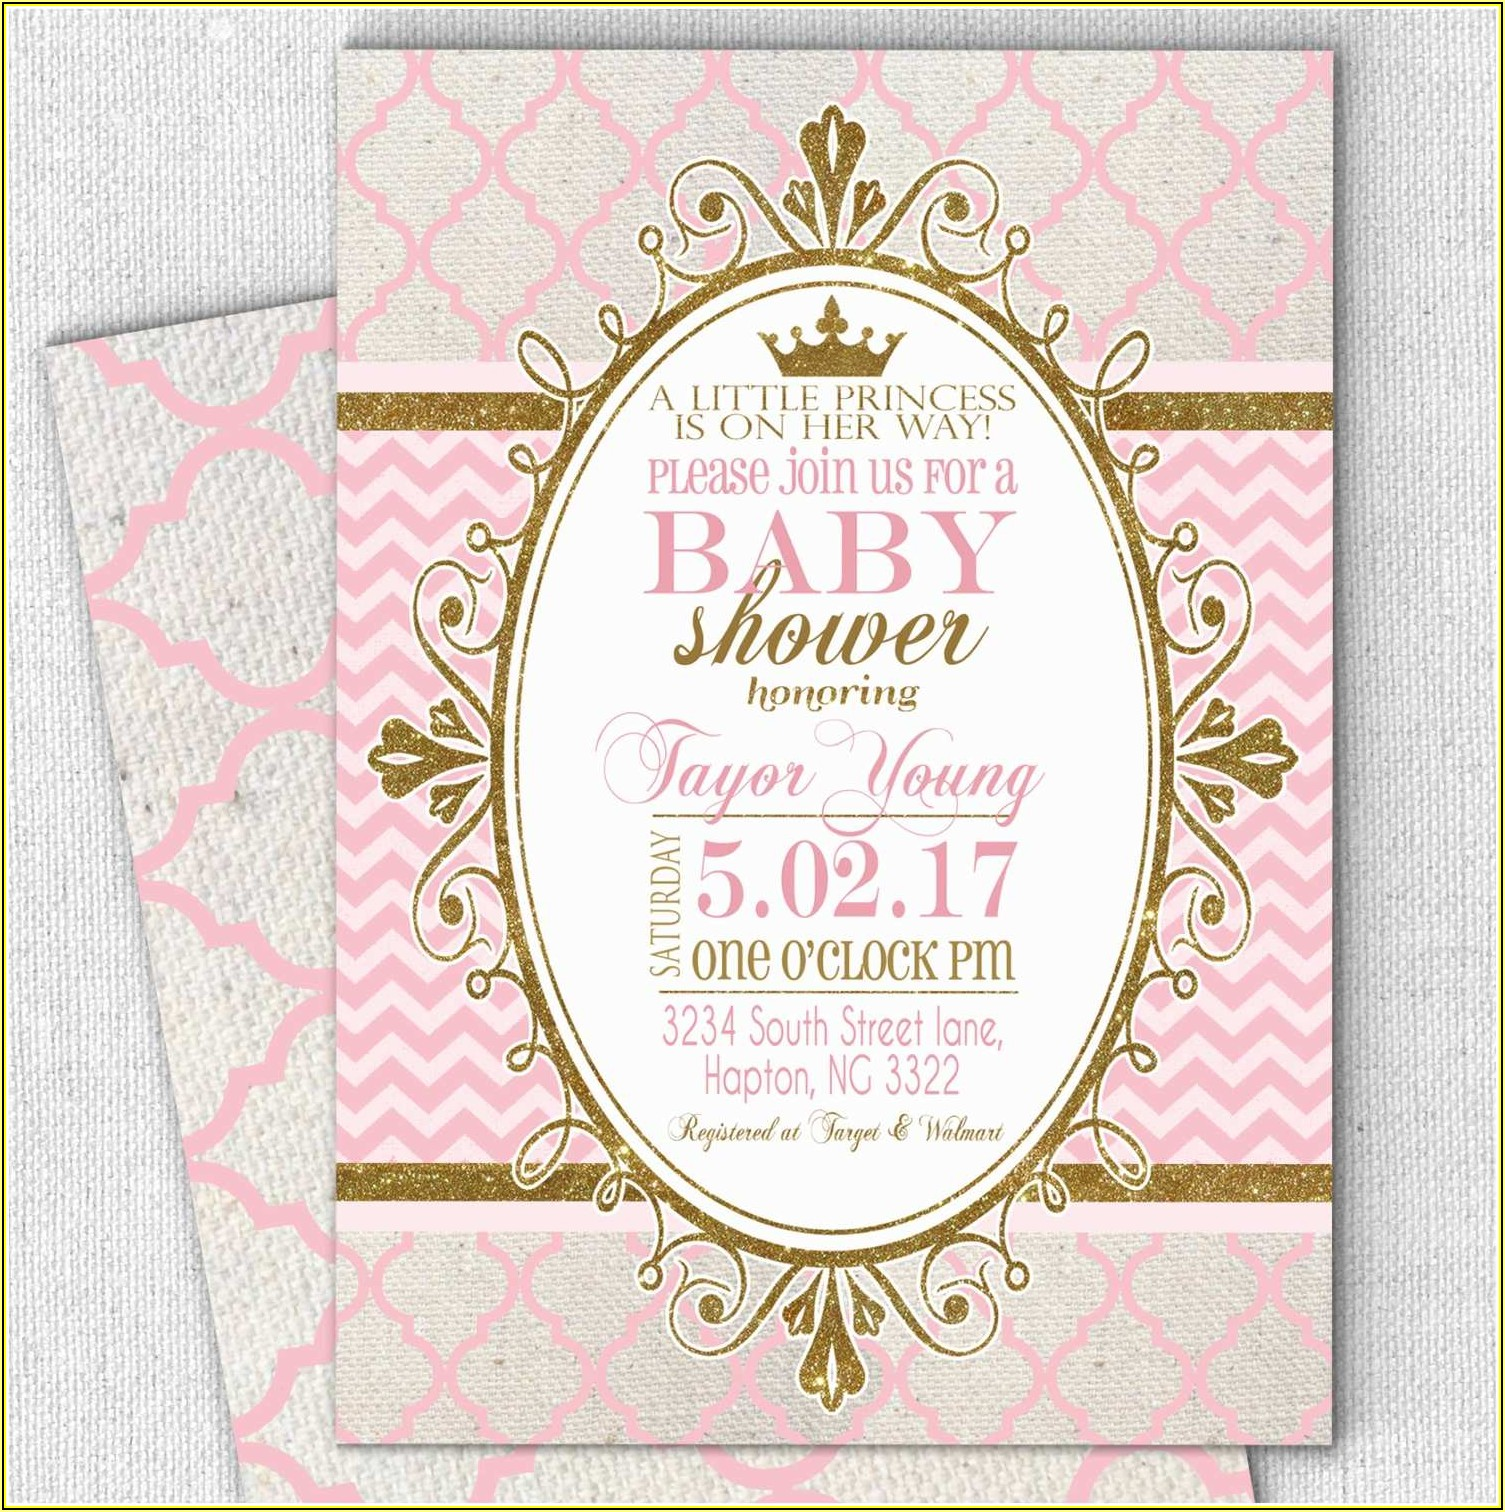 Little Royal Princess Baby Shower Invitation Templates